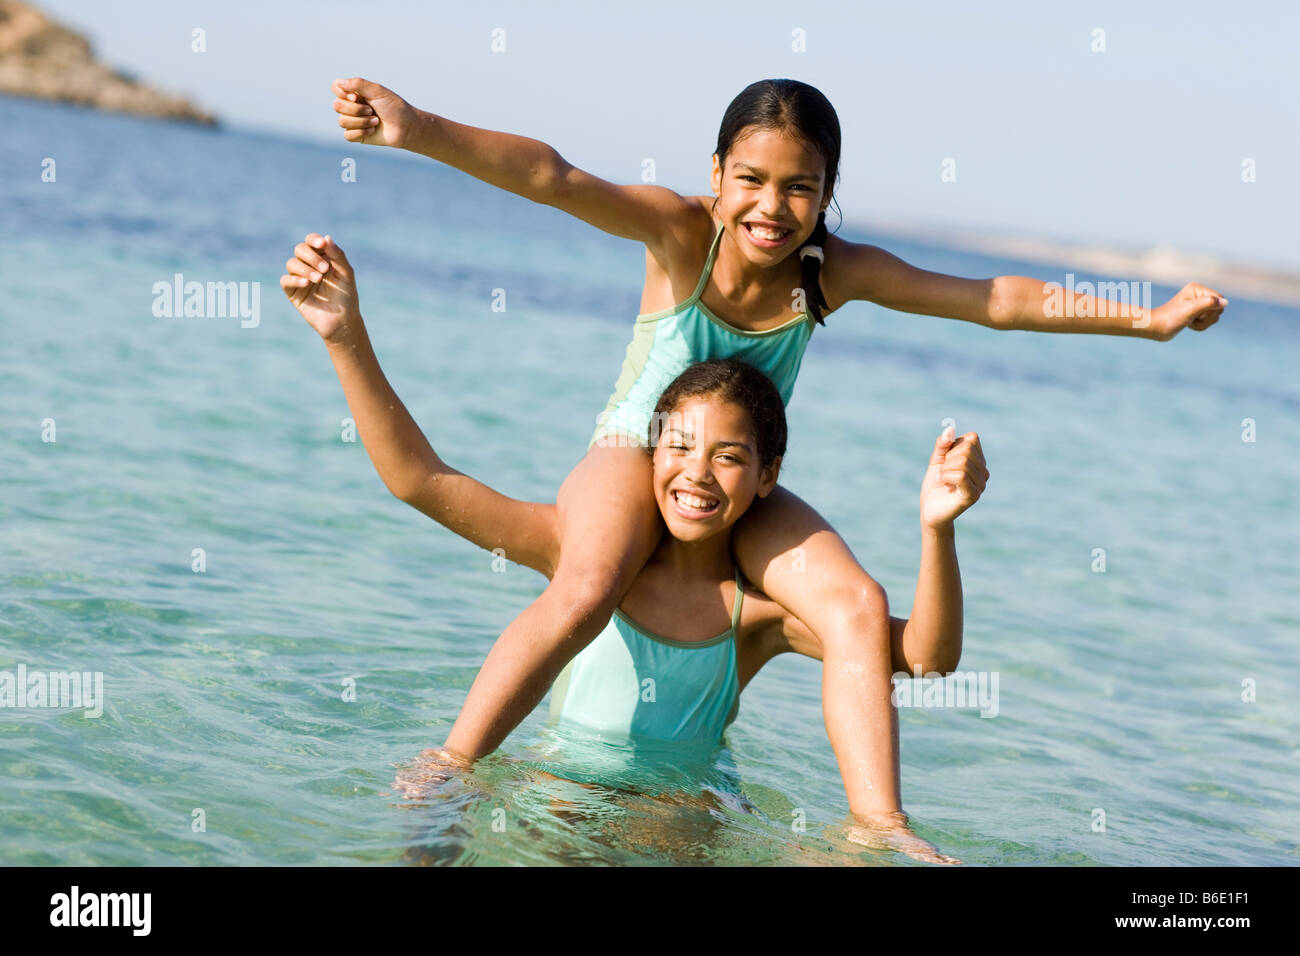 Sisters on holiday. Girl sitting on her sister's shoulders in the sea. - Stock Image